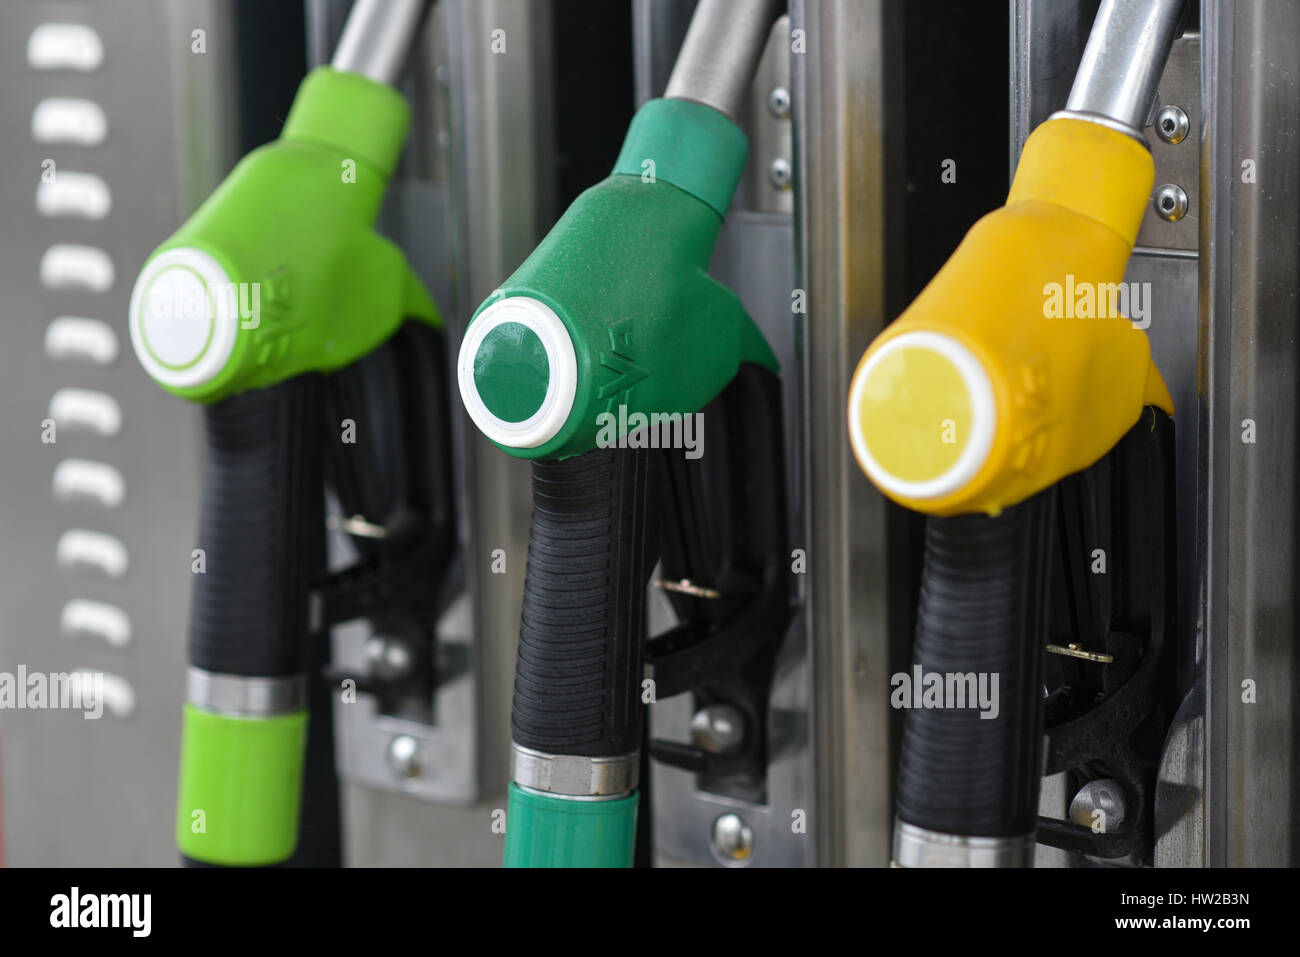 Nozzles on a fuel dispenser machine at a petrol station Stock Photo